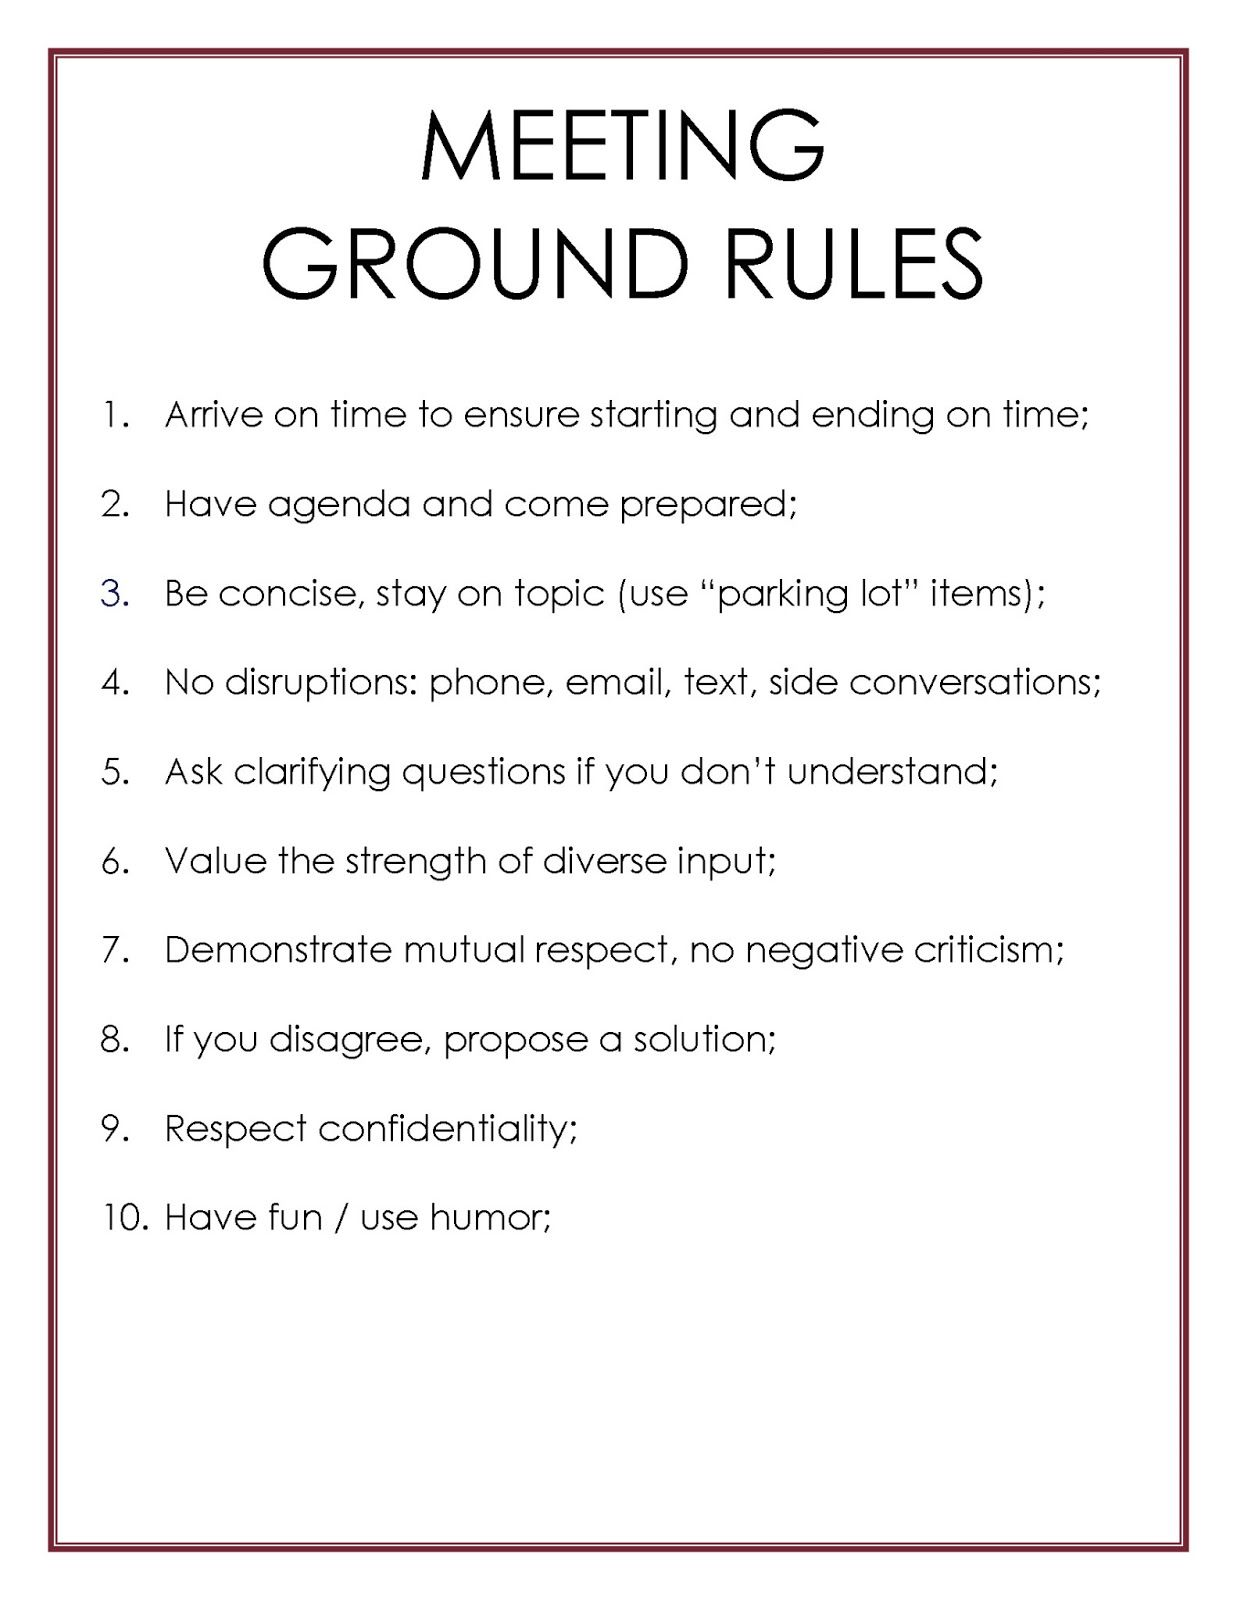 MyCoachKen MEETINGS Ground Rules Instructional